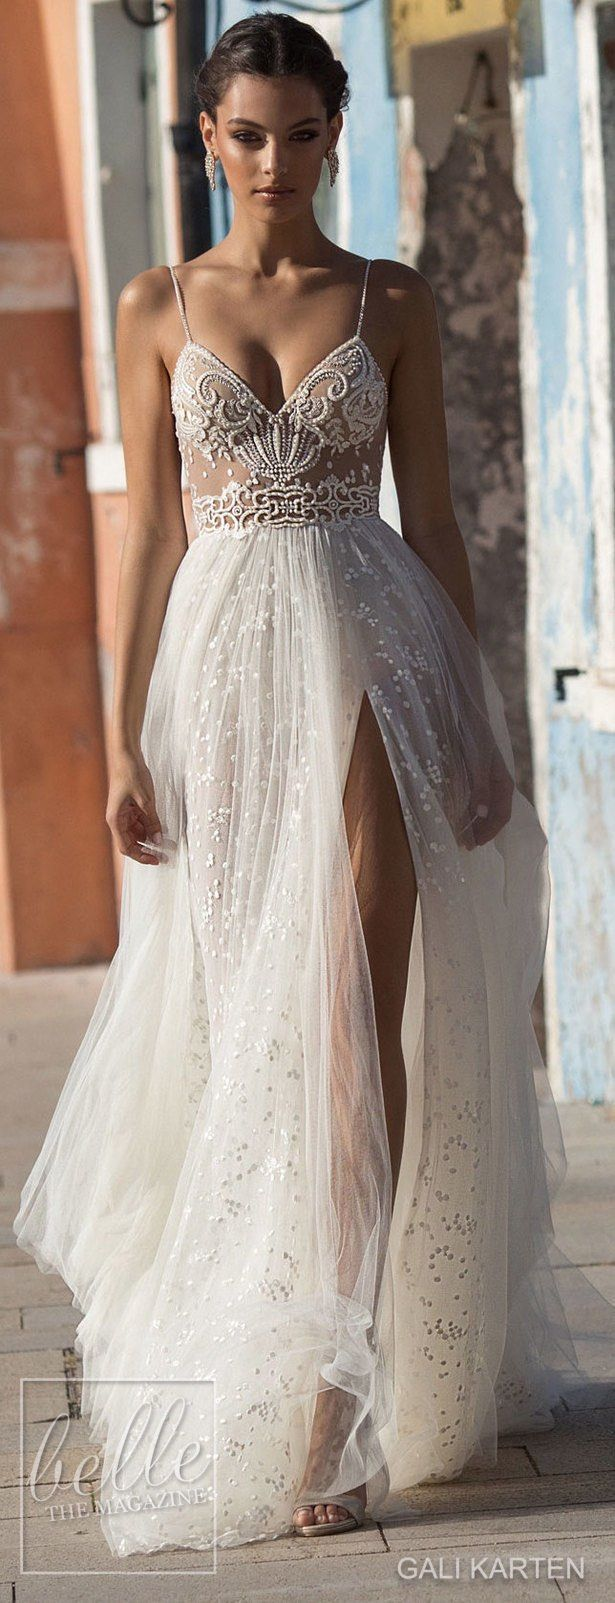 811 Best Auburn Weddings Images On Pinterest Ball Gown Bridal And